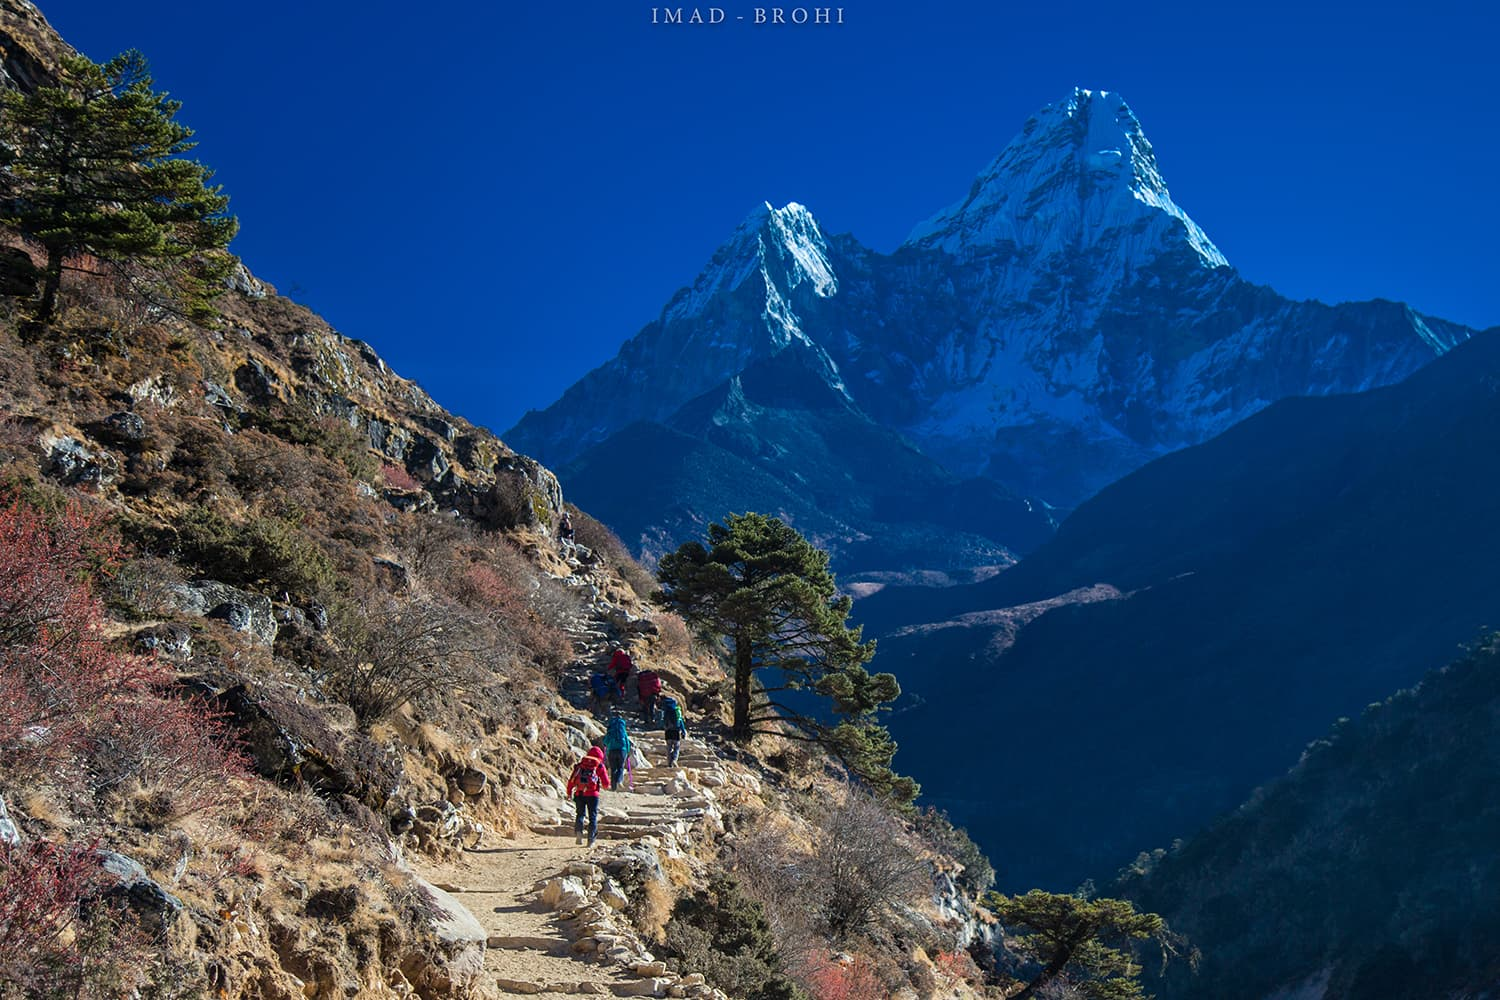 Day 6: Trail to Dingboche with Ama Dablam (6,812m) in the background.